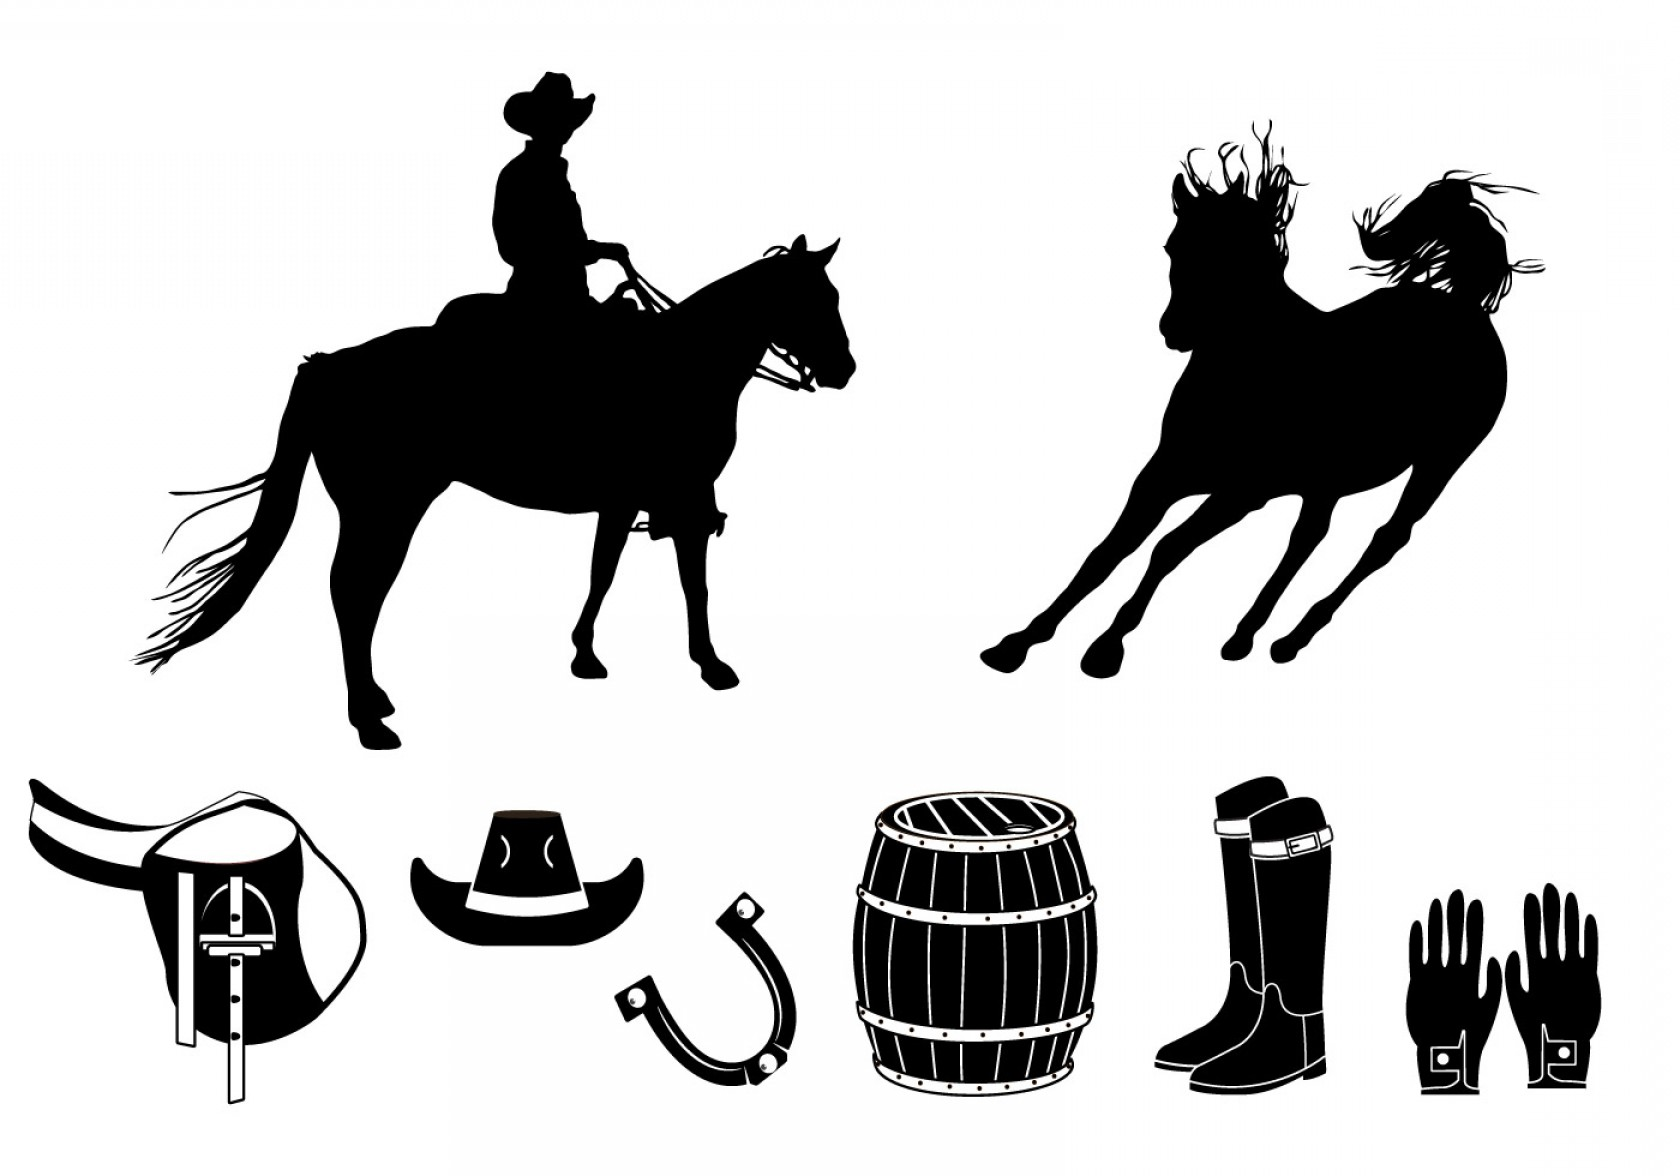 Barrel Racer Vector: Element Of Barrel Racing Silhouette